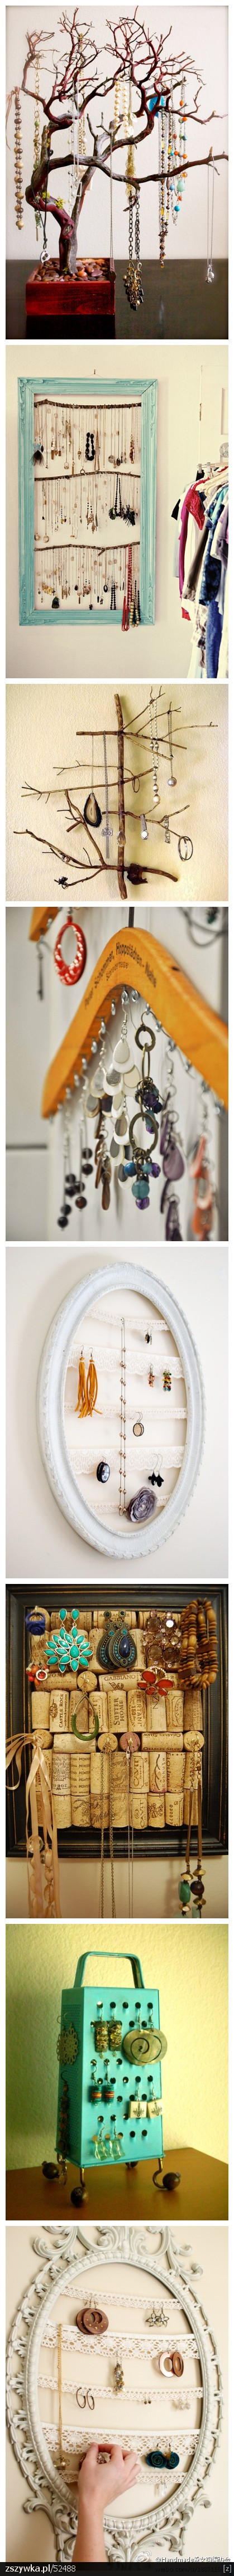 Jewelry hangers. Love these! (sorry for taking up your feed)